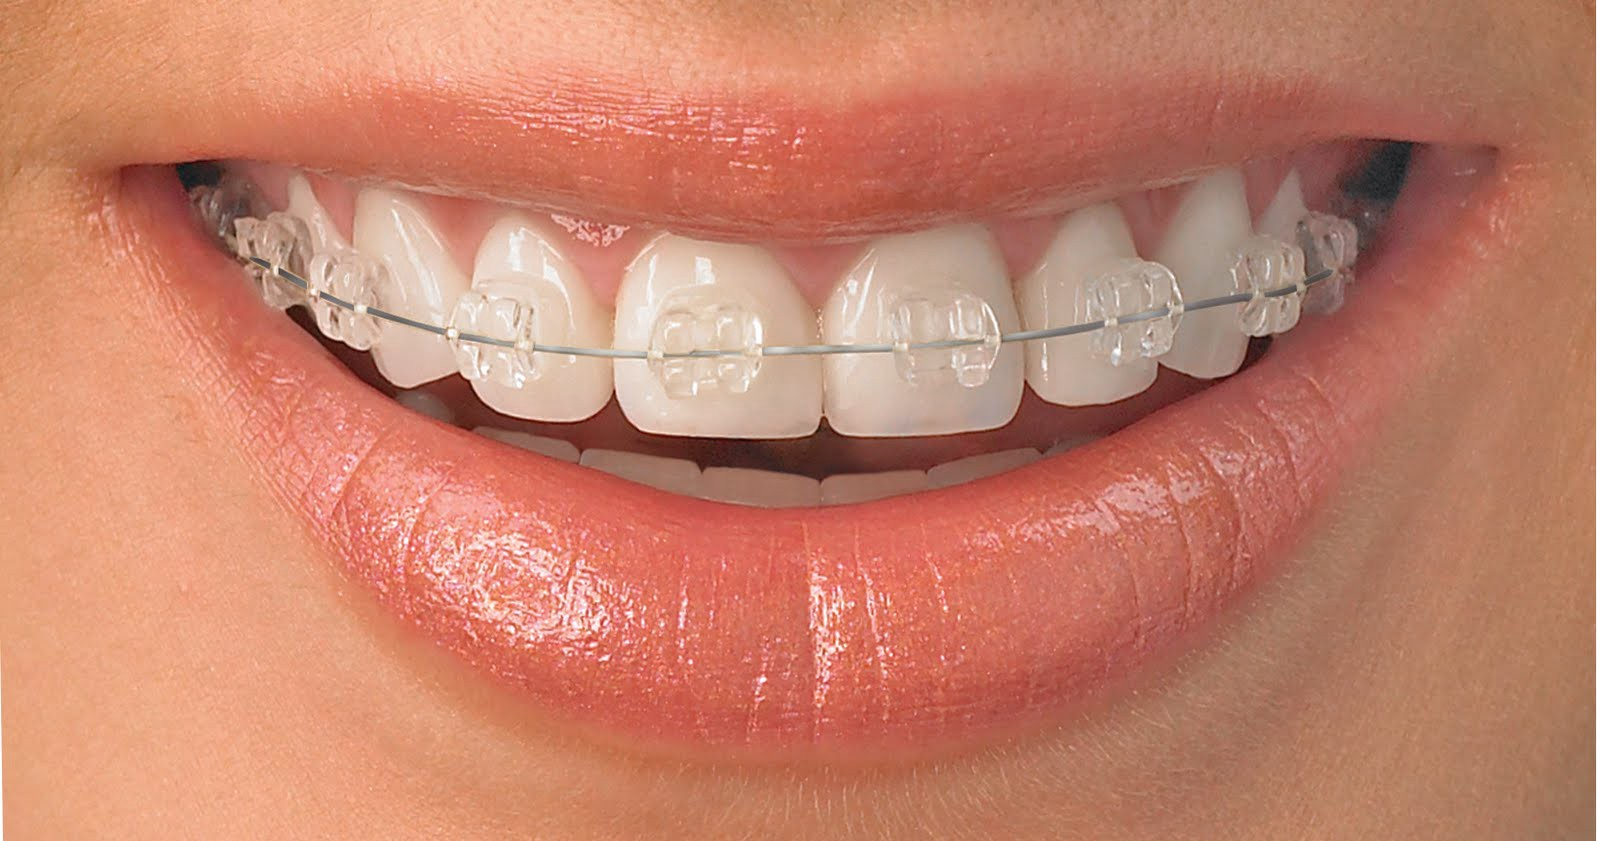 What are the services that you can get from Orthodontics Melbourne?